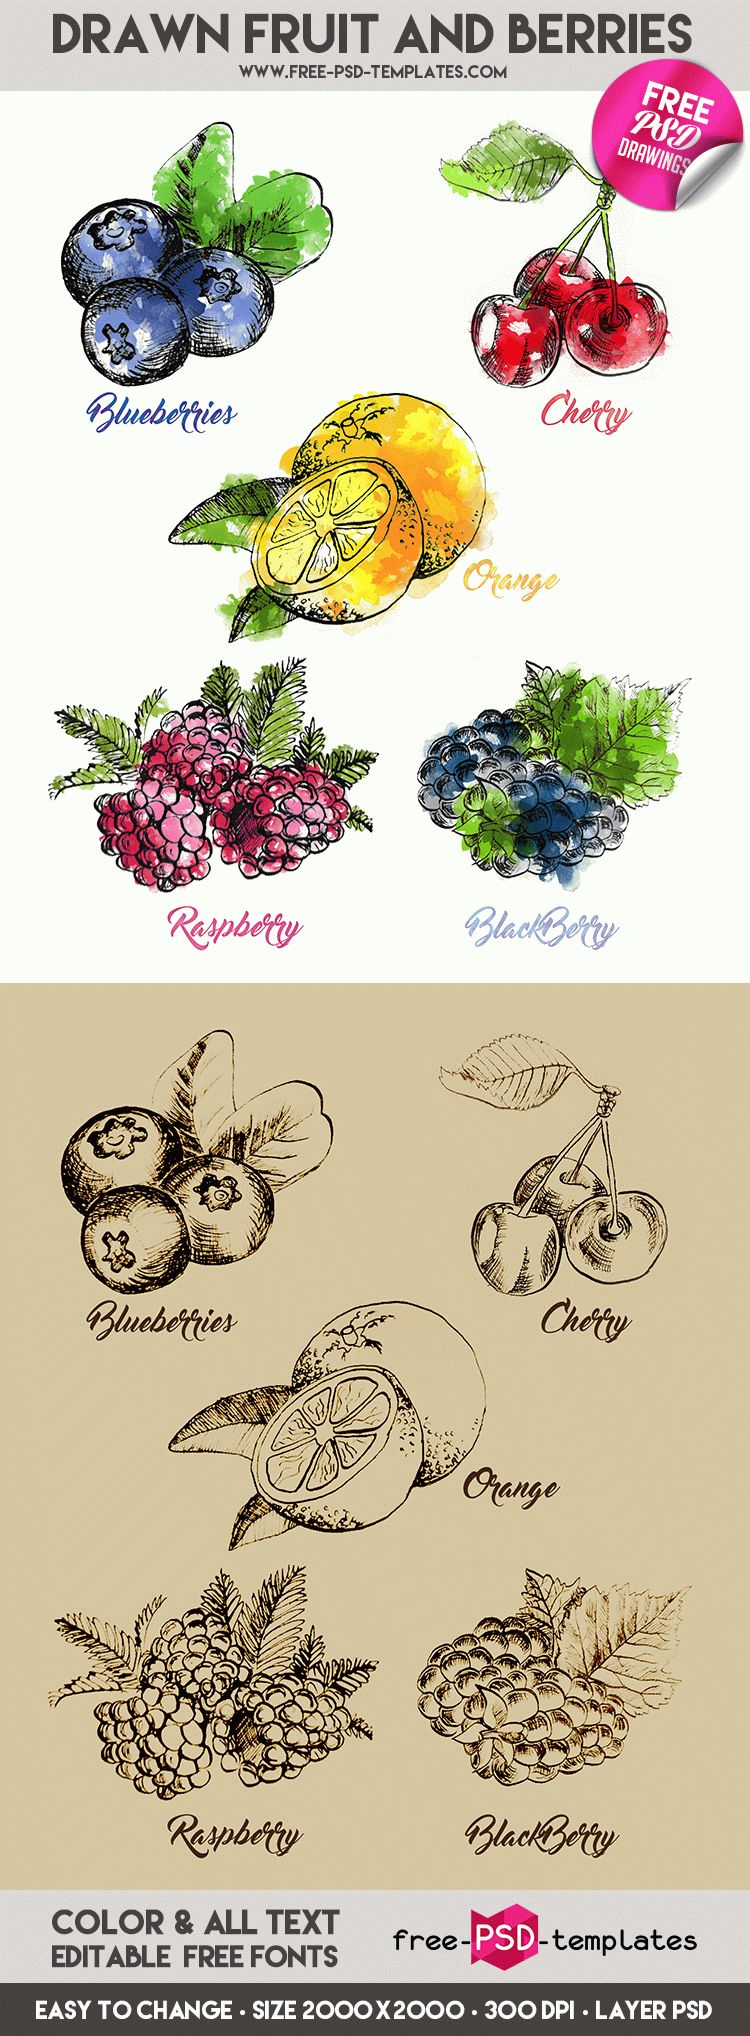 Preview_Drawn_Fruit_and_Berries_result